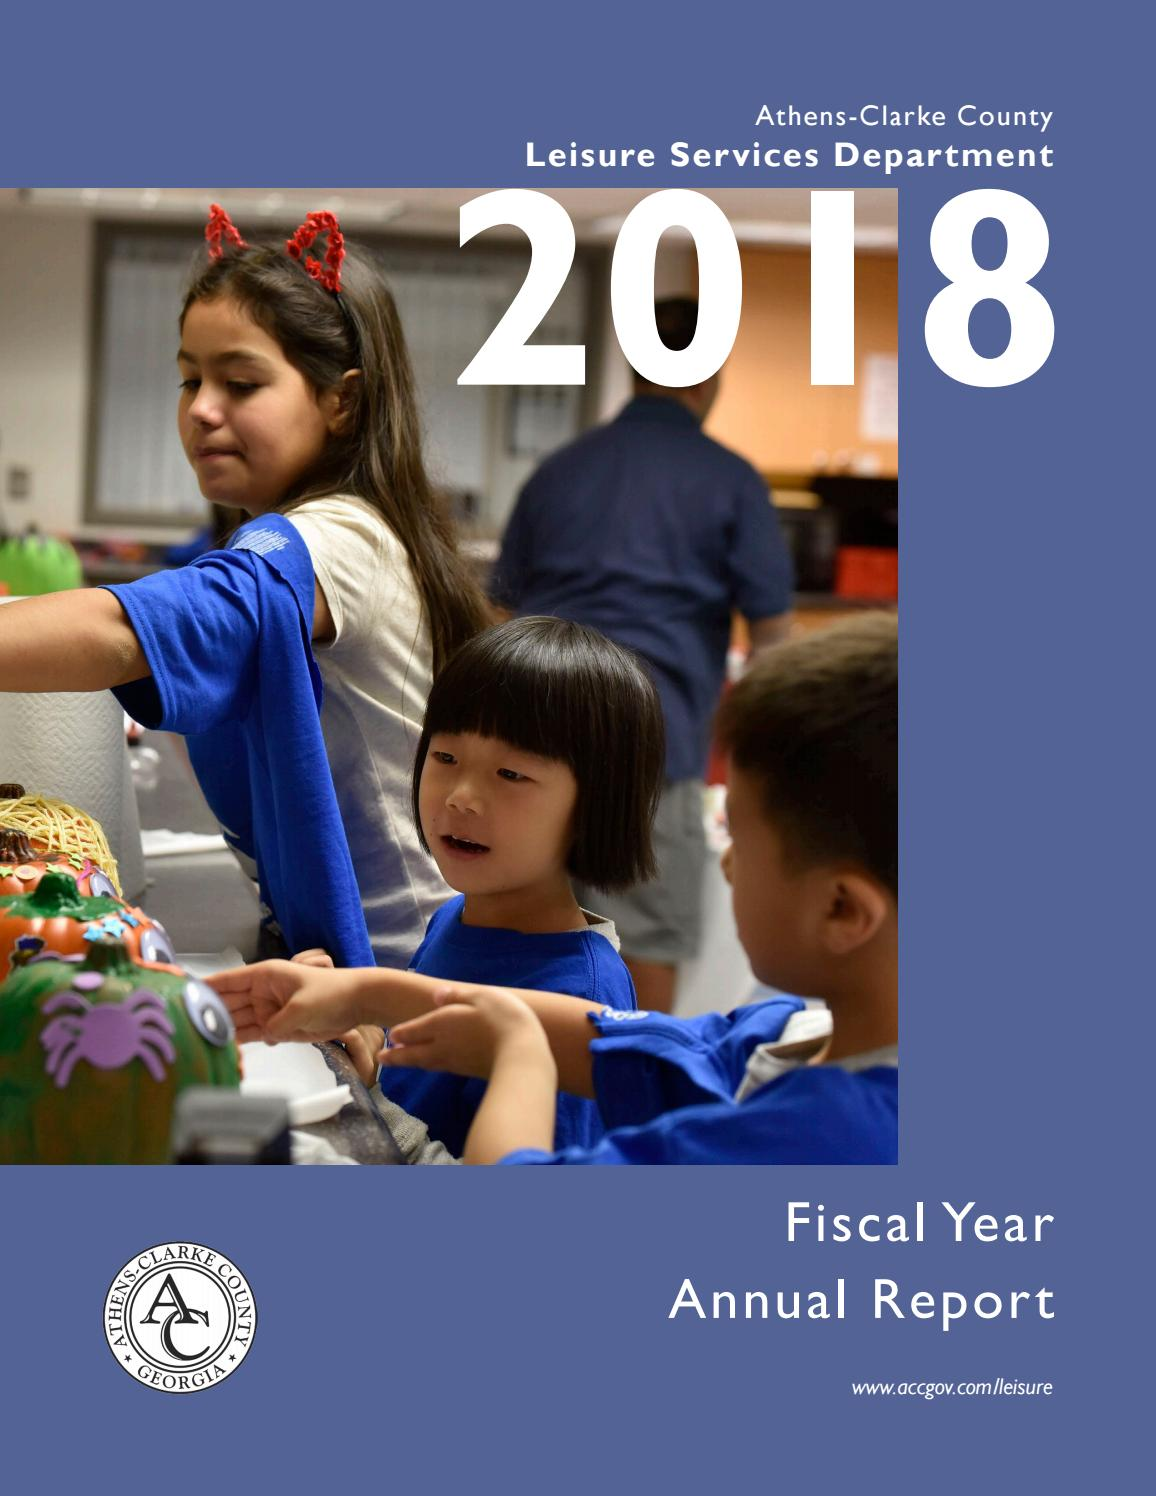 The 2018 Athens-Clarke County Leisure Services Department Annual Report by ACC Leisure Services - Issuu